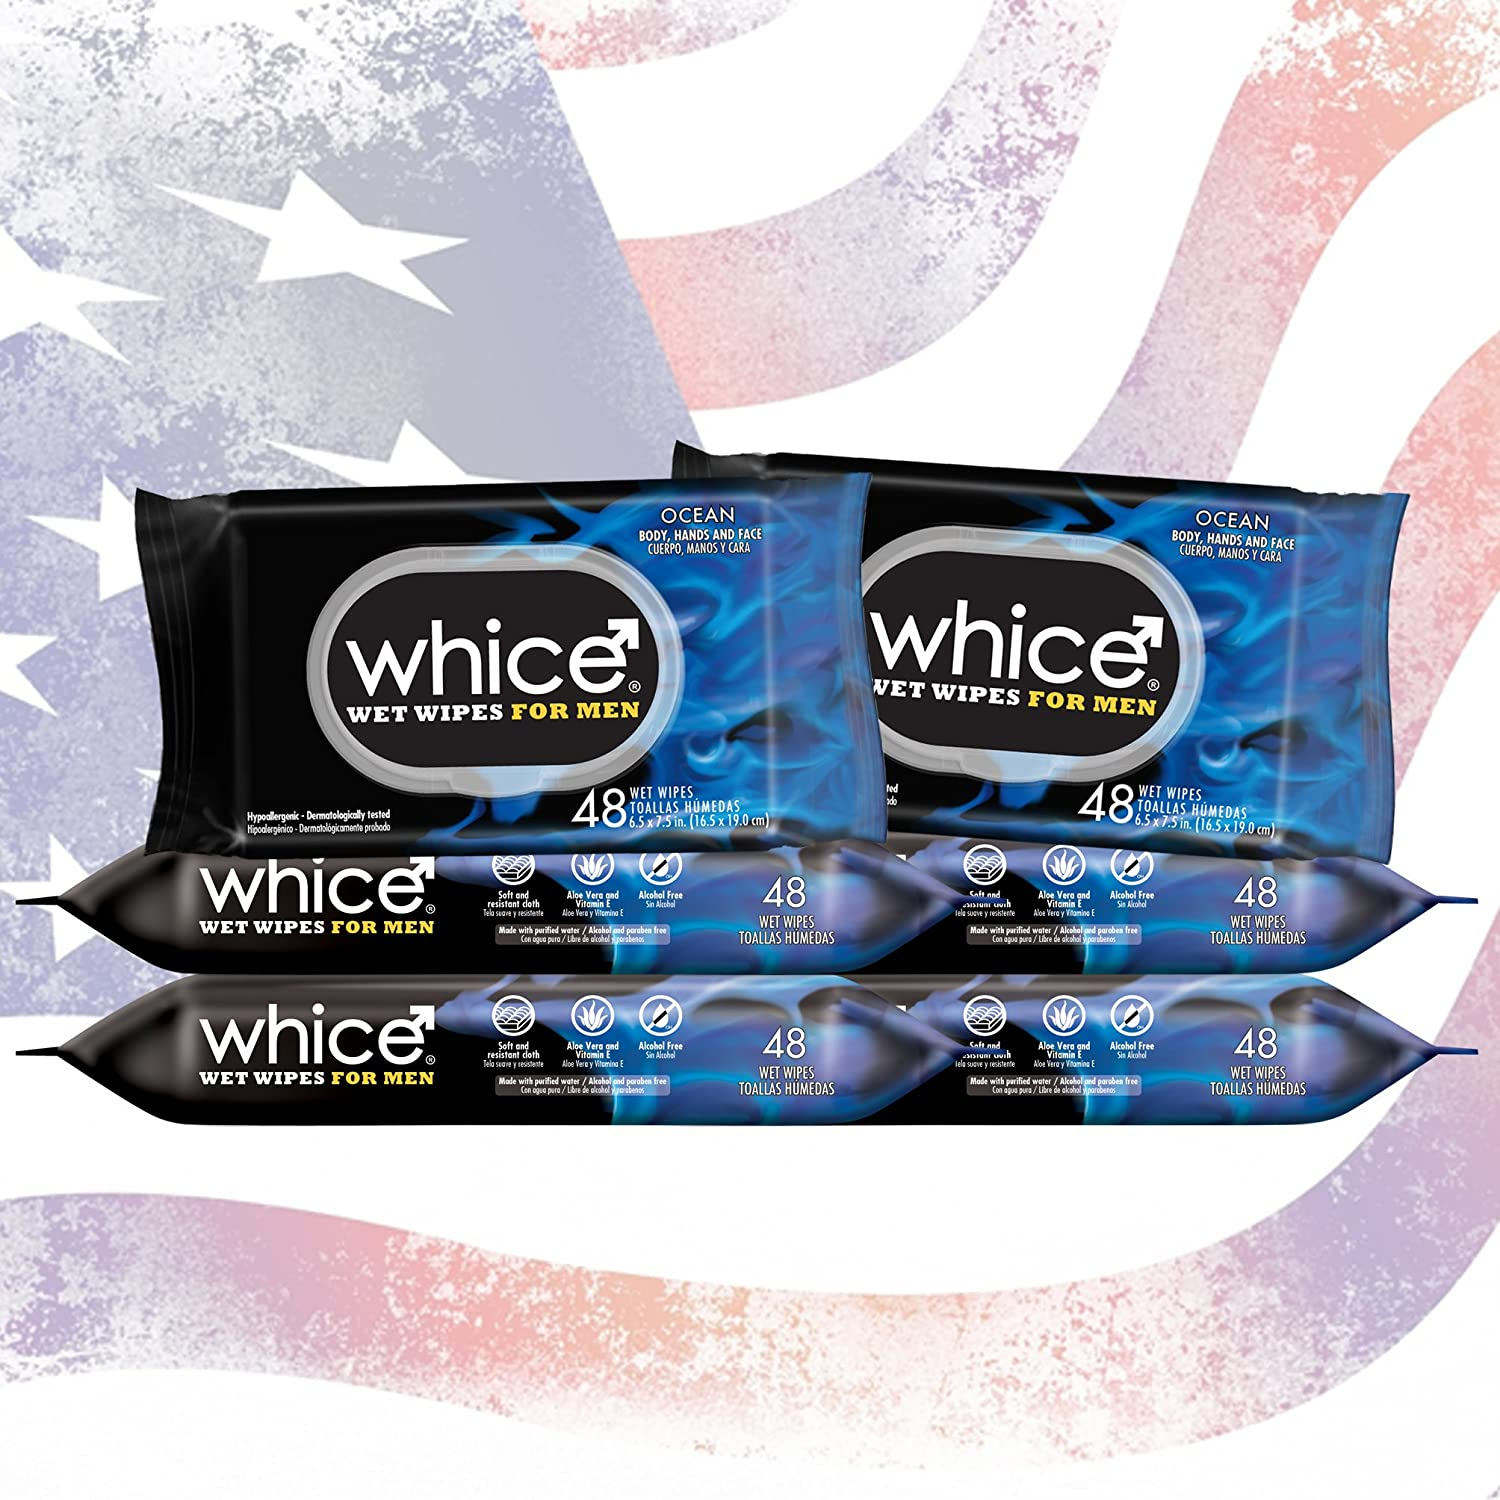 Body Wipes for Men by Whice - Hypoallergenic Full Body Wet Wipes - After Sports or Gym, Traveling, Car, Toilet - Ocean Fragrance. Keep your Body, Hands, ...